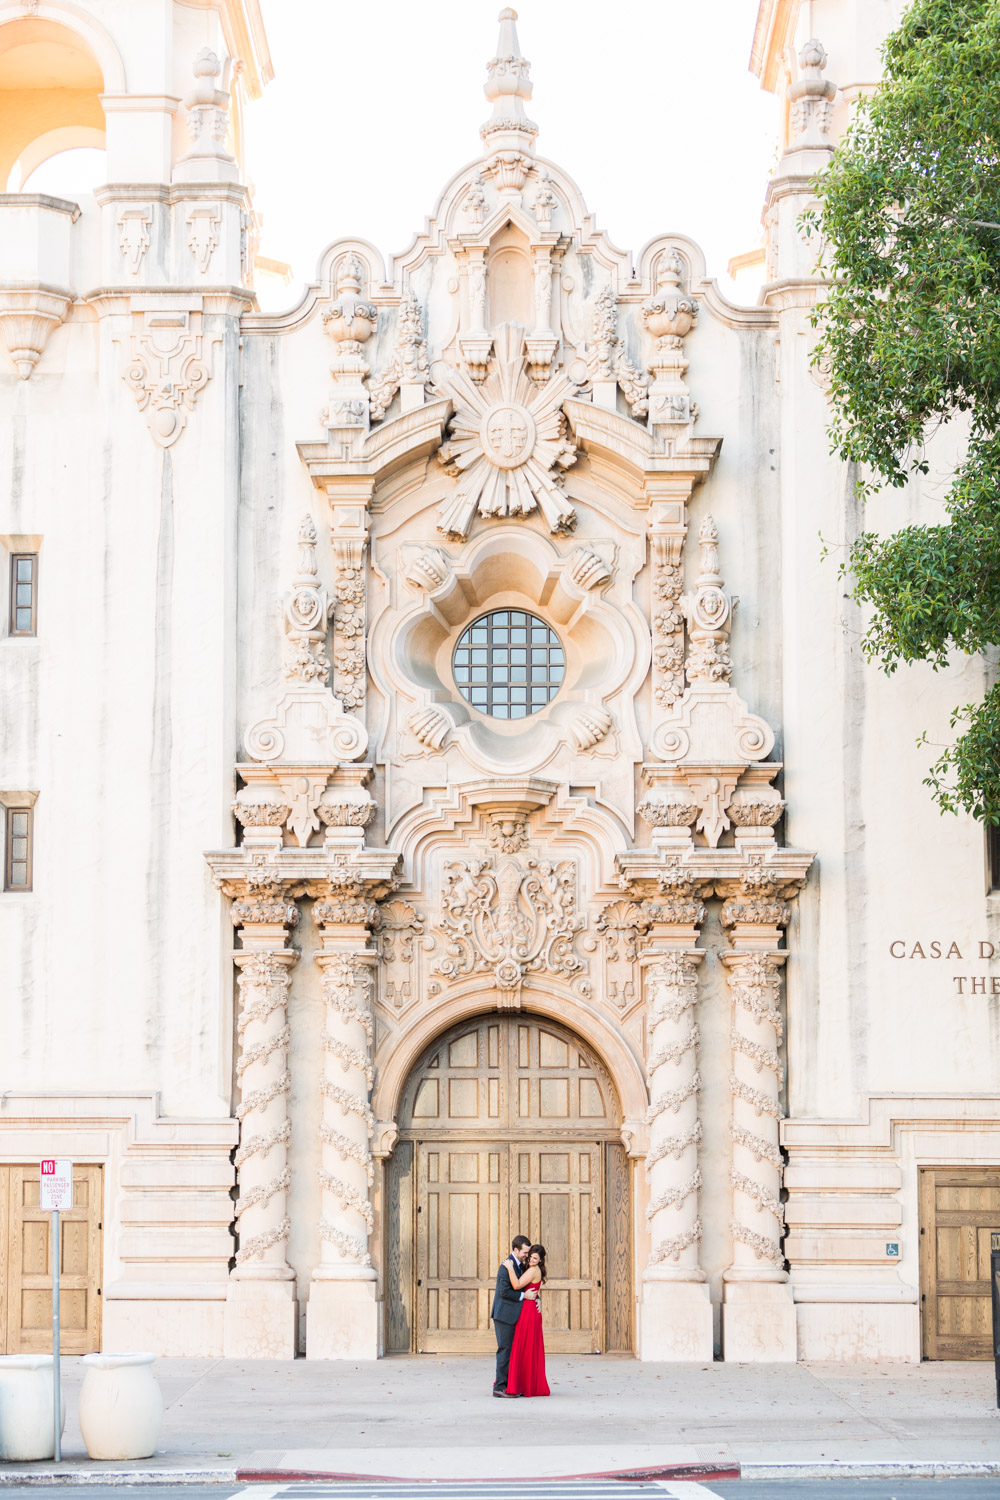 Formal engagement outfit for a session in Balboa Park, bride in a red Halston gown and groom in a suit and tie for their engagement photos, Balboa Park architecture, Cavin Elizabeth Photography